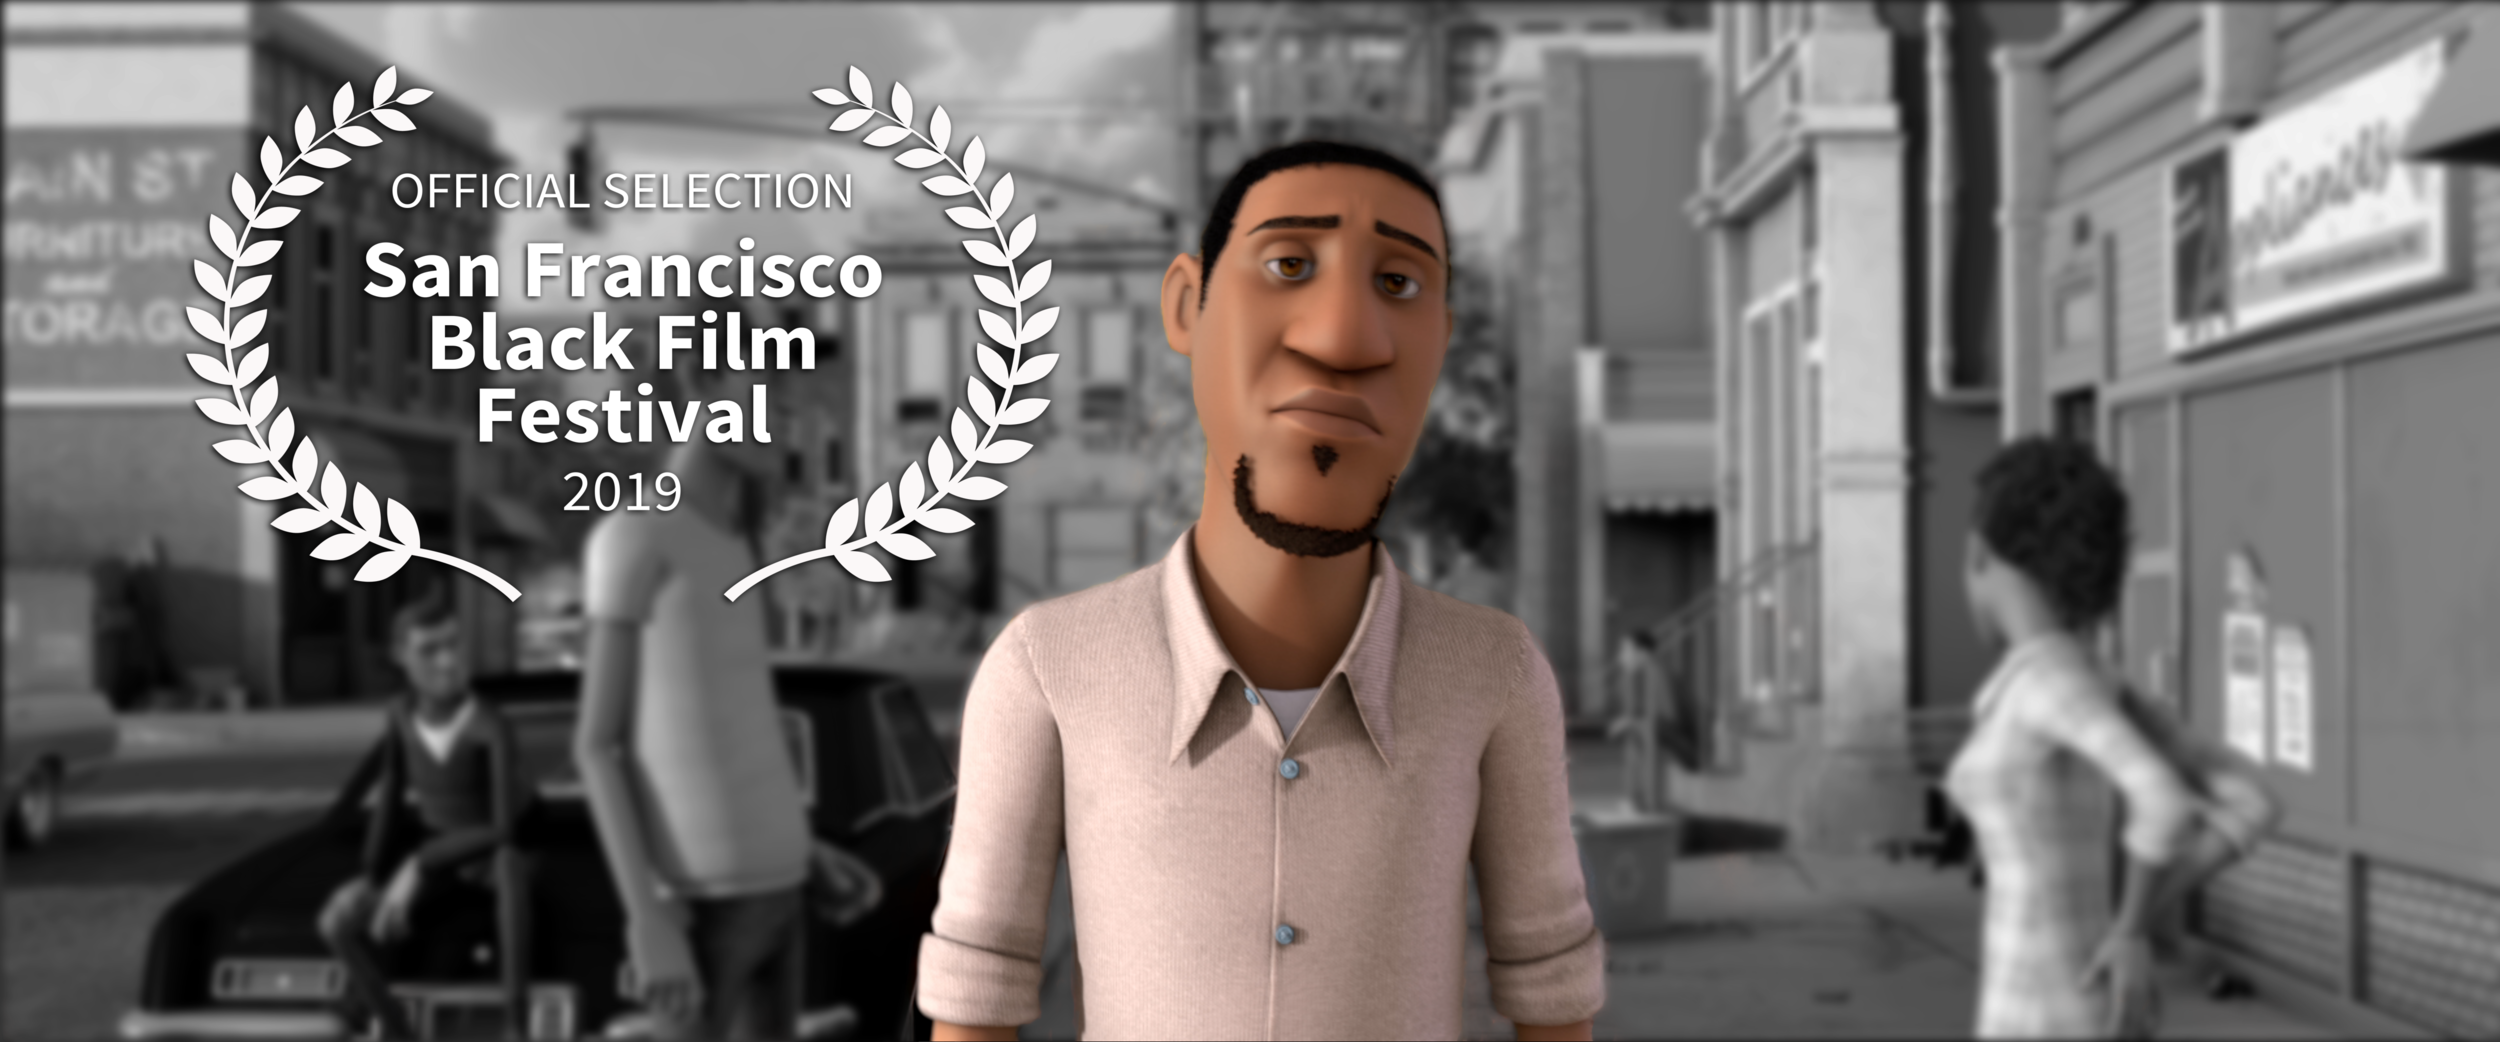 official_selection_substance3.png